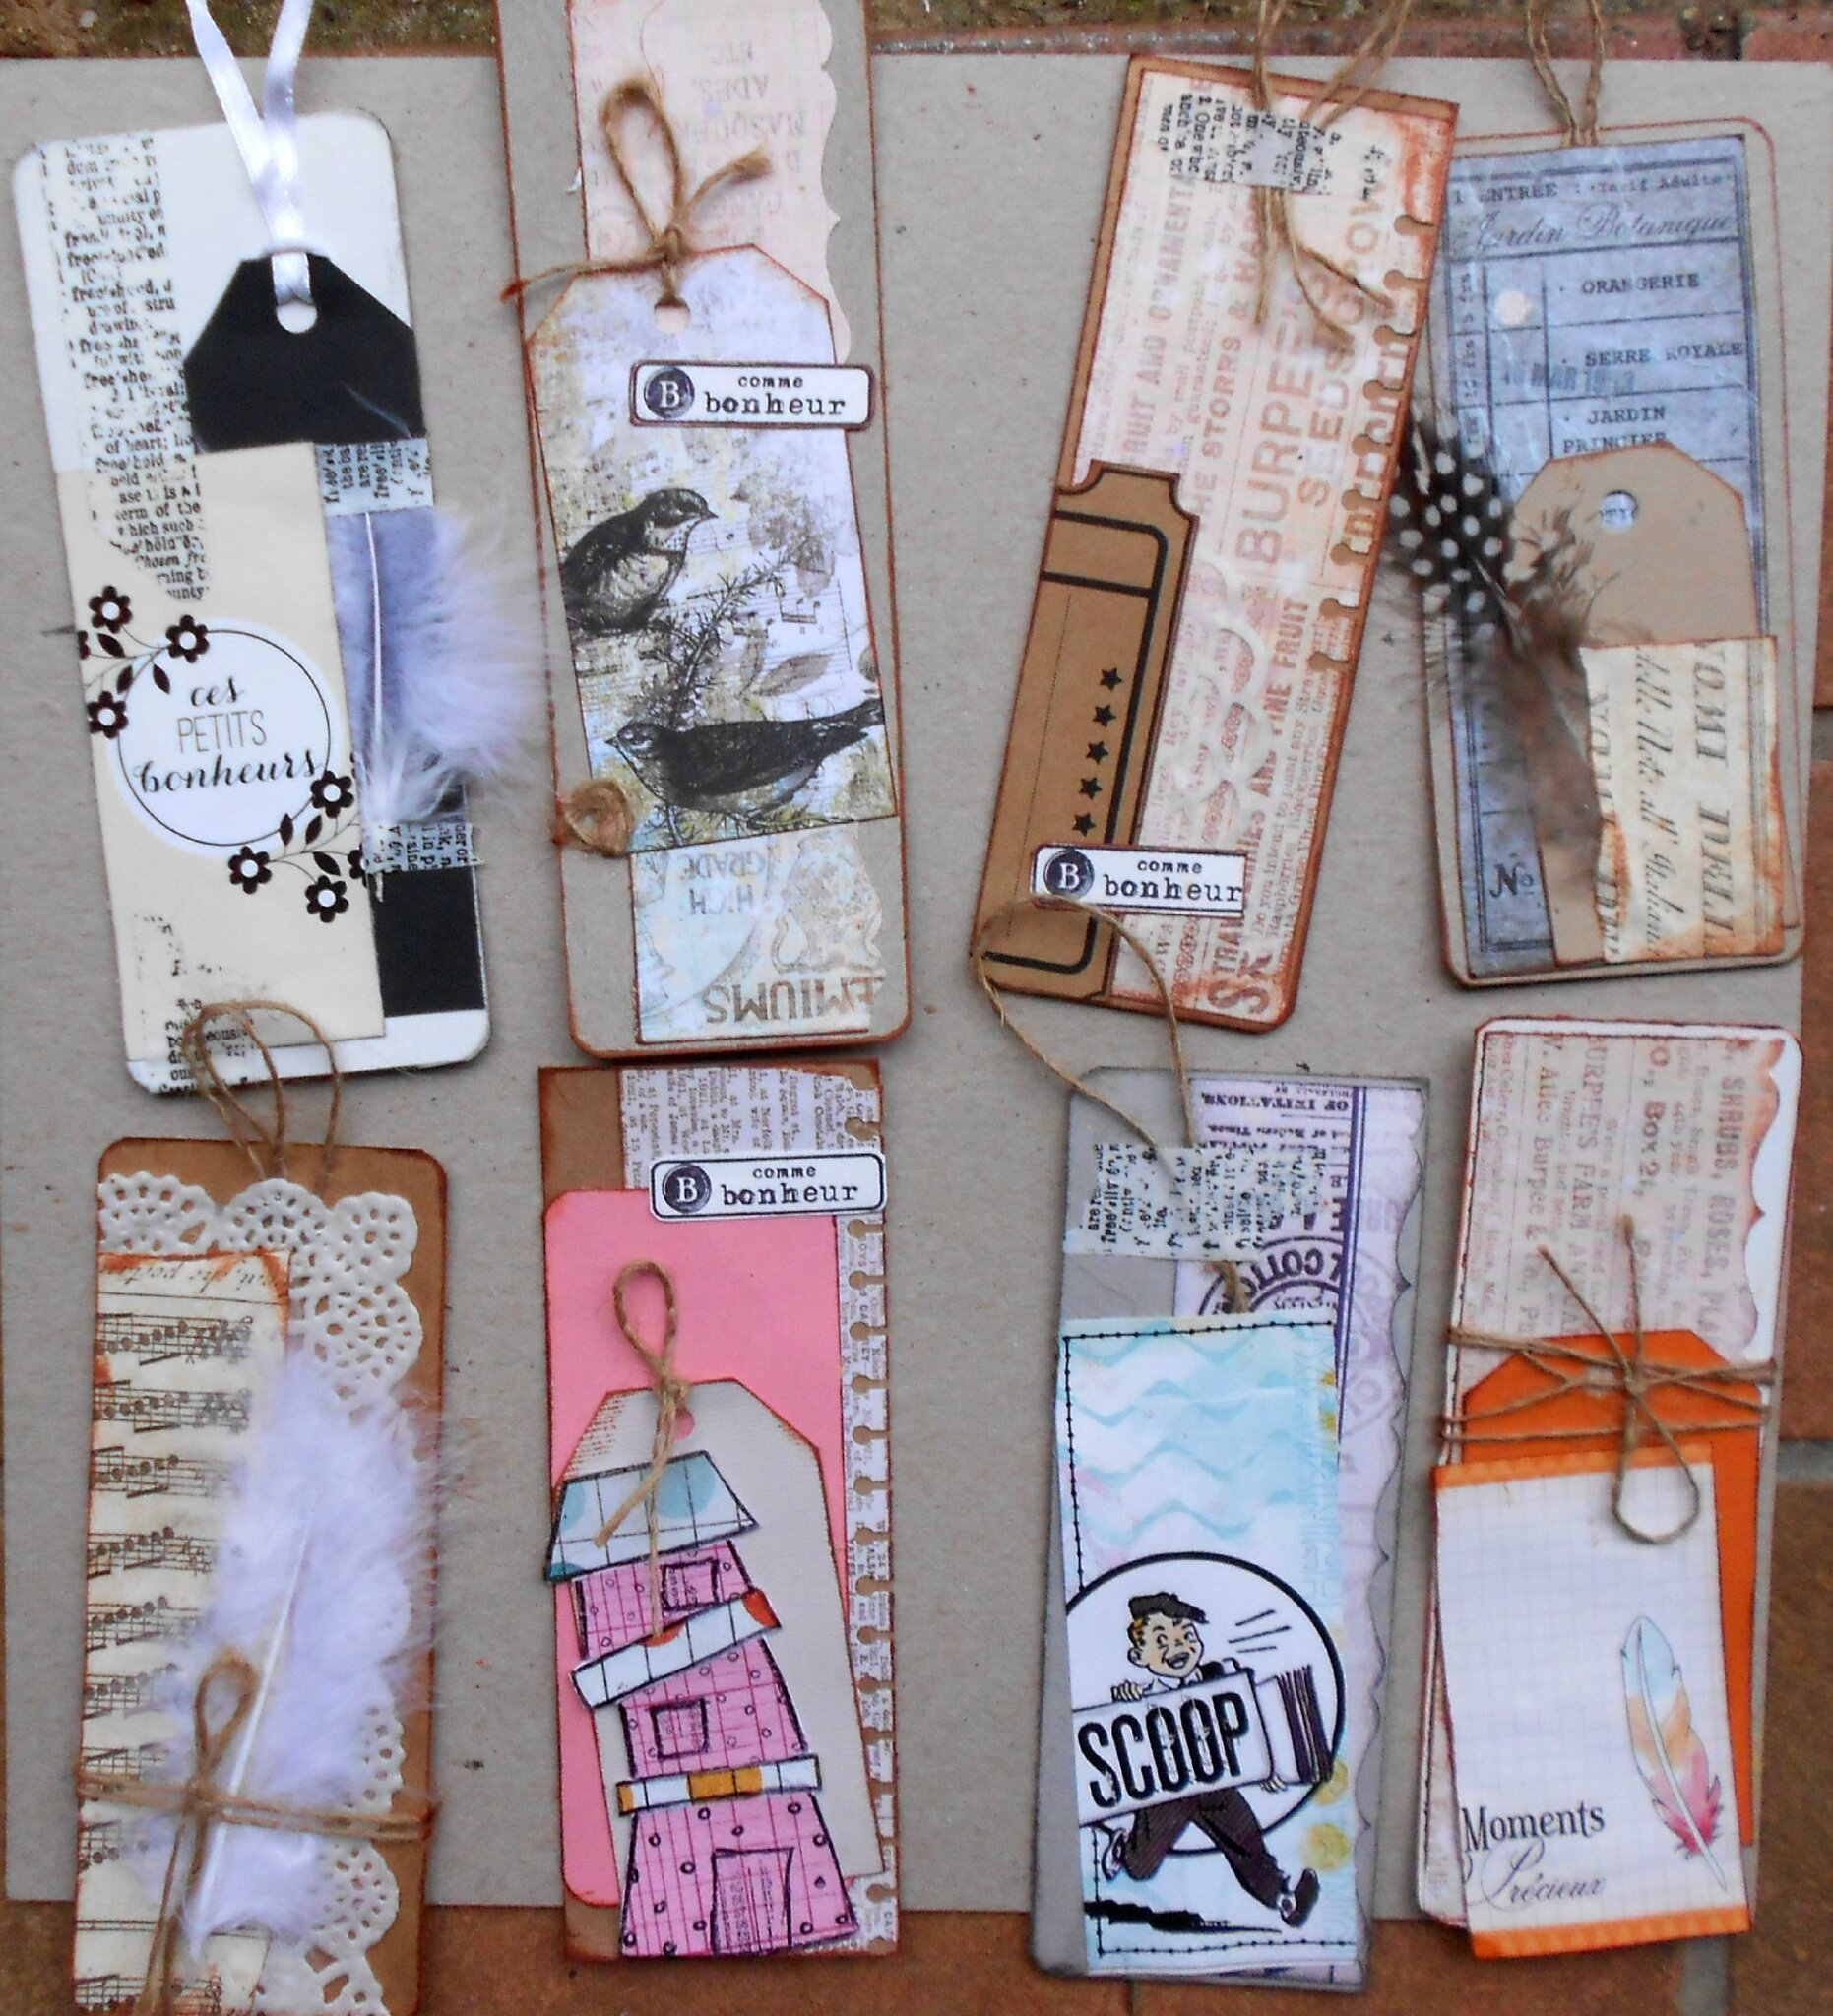 des cartes et des marque pages myriammg scrap. Black Bedroom Furniture Sets. Home Design Ideas